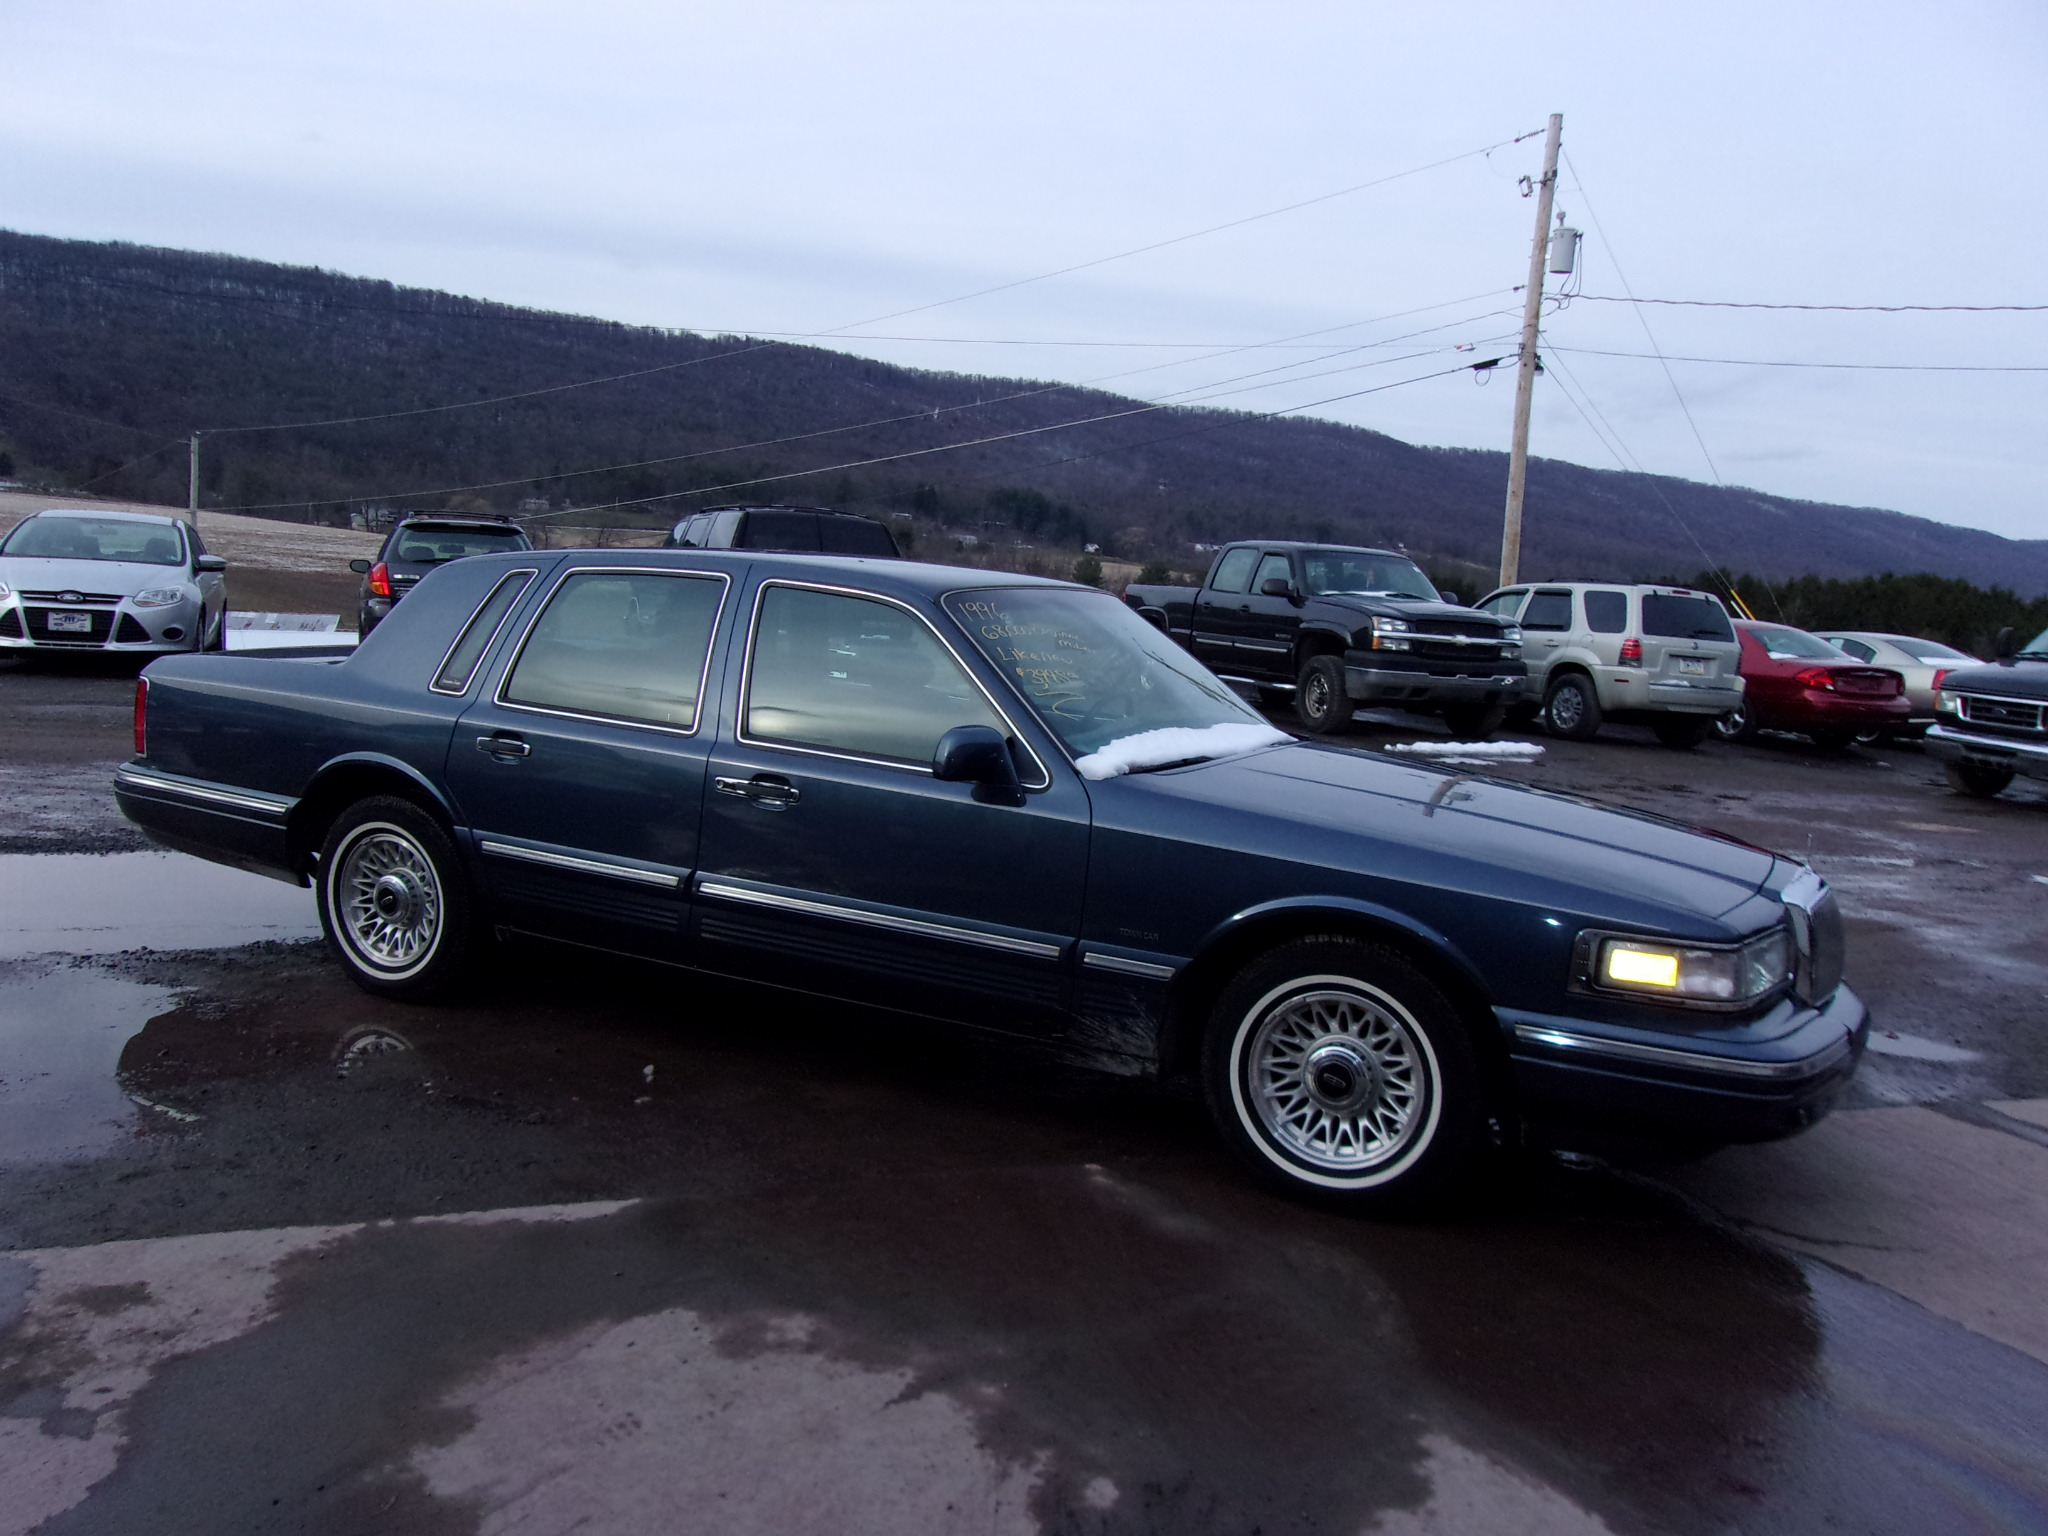 1996 Lincoln Town Car Image For